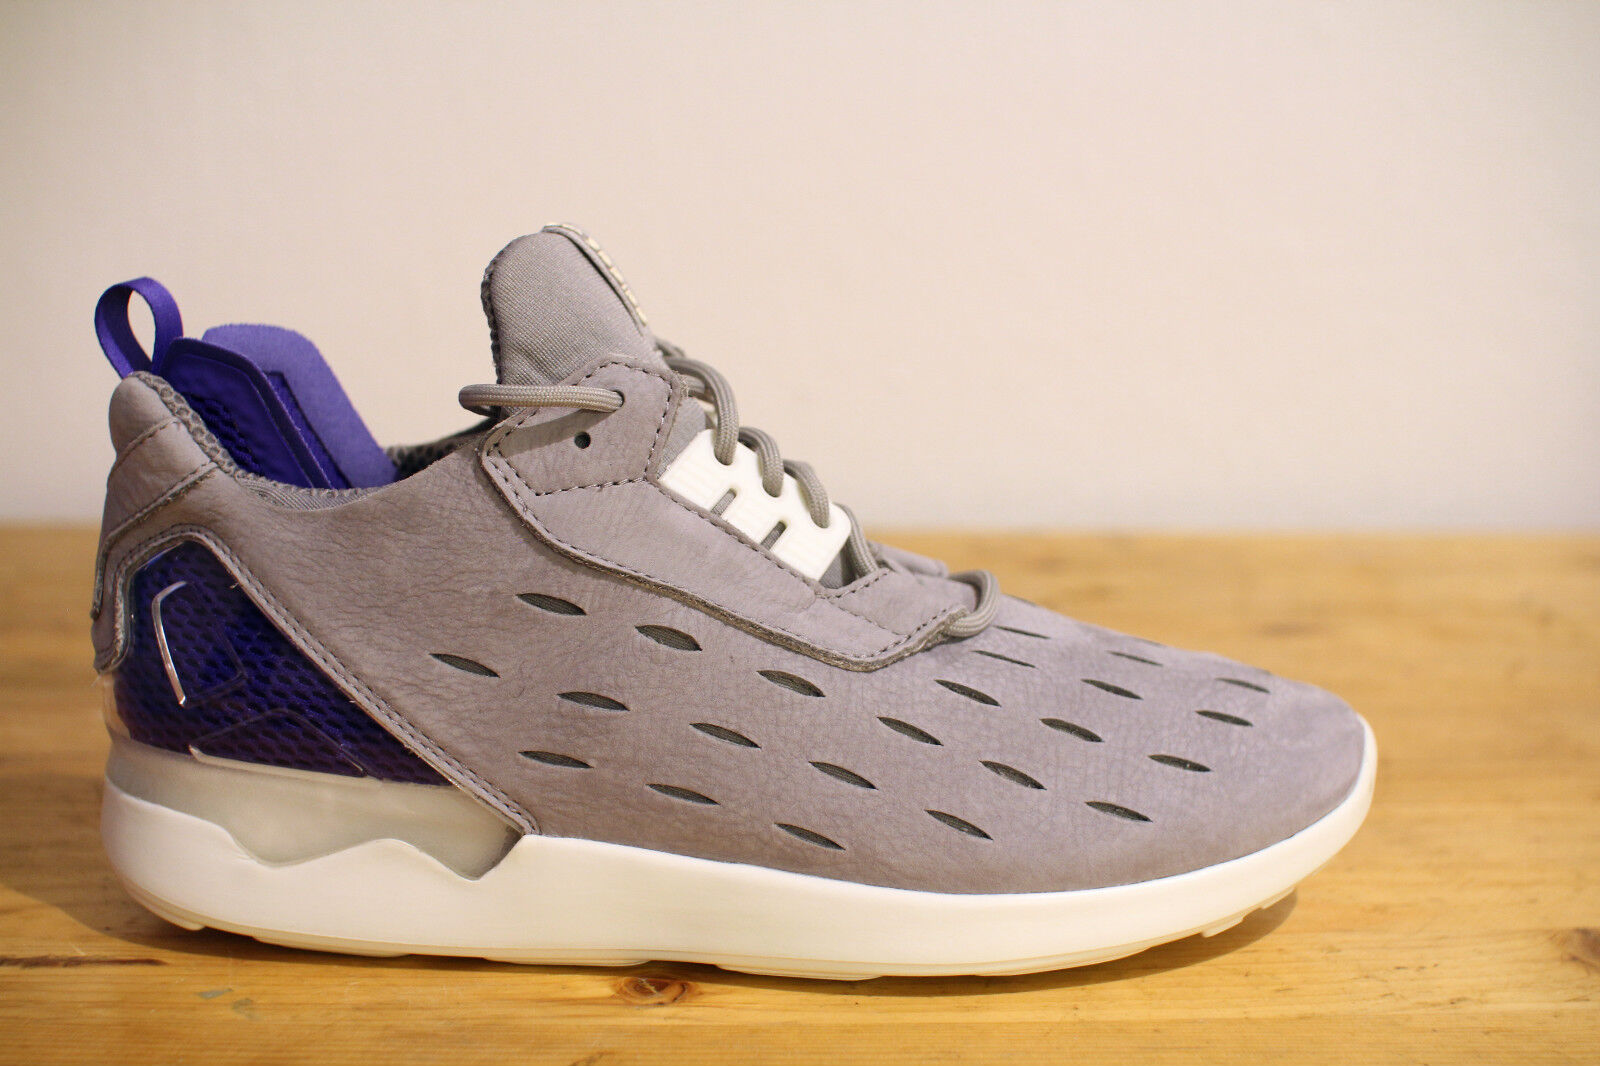 880f84272f18 ... Nike Nike Nike Air Max 95 Ultra Essential Mens Running Trainers 857910 Sneakers  Shoes 404 ac866d ...